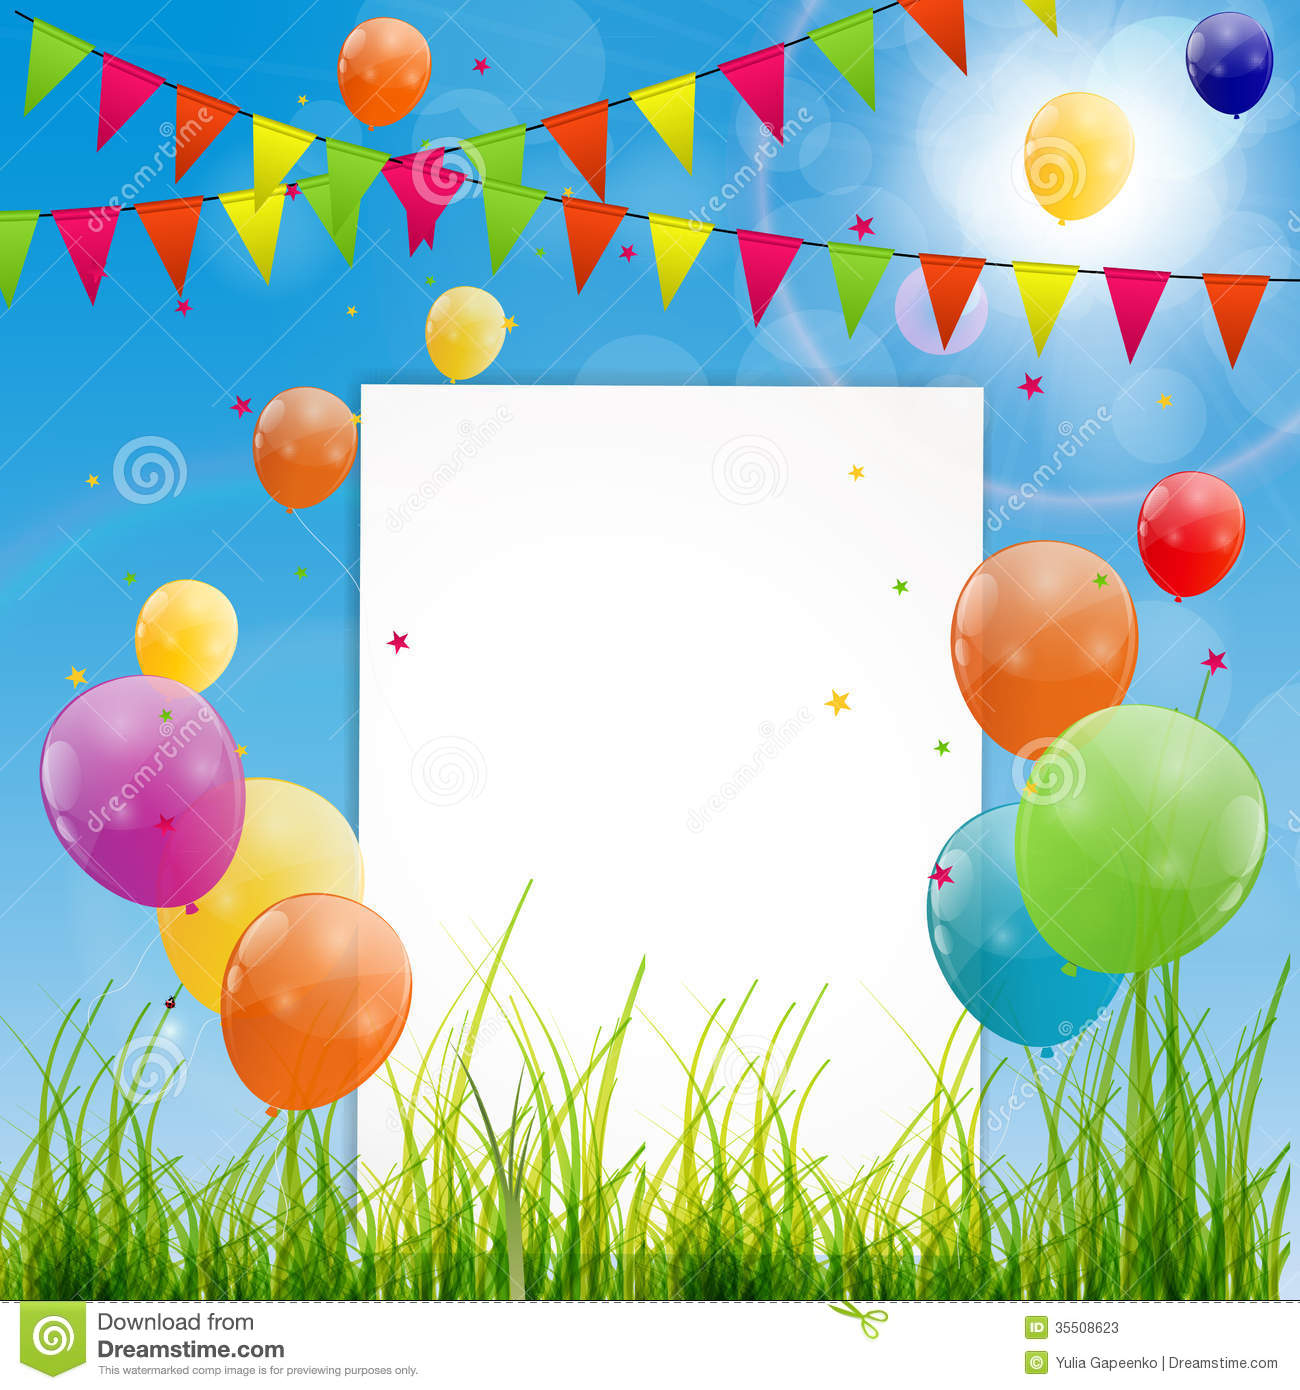 Color glossy balloons birthday card background stock vector color glossy balloons birthday card background festival carnival bookmarktalkfo Choice Image